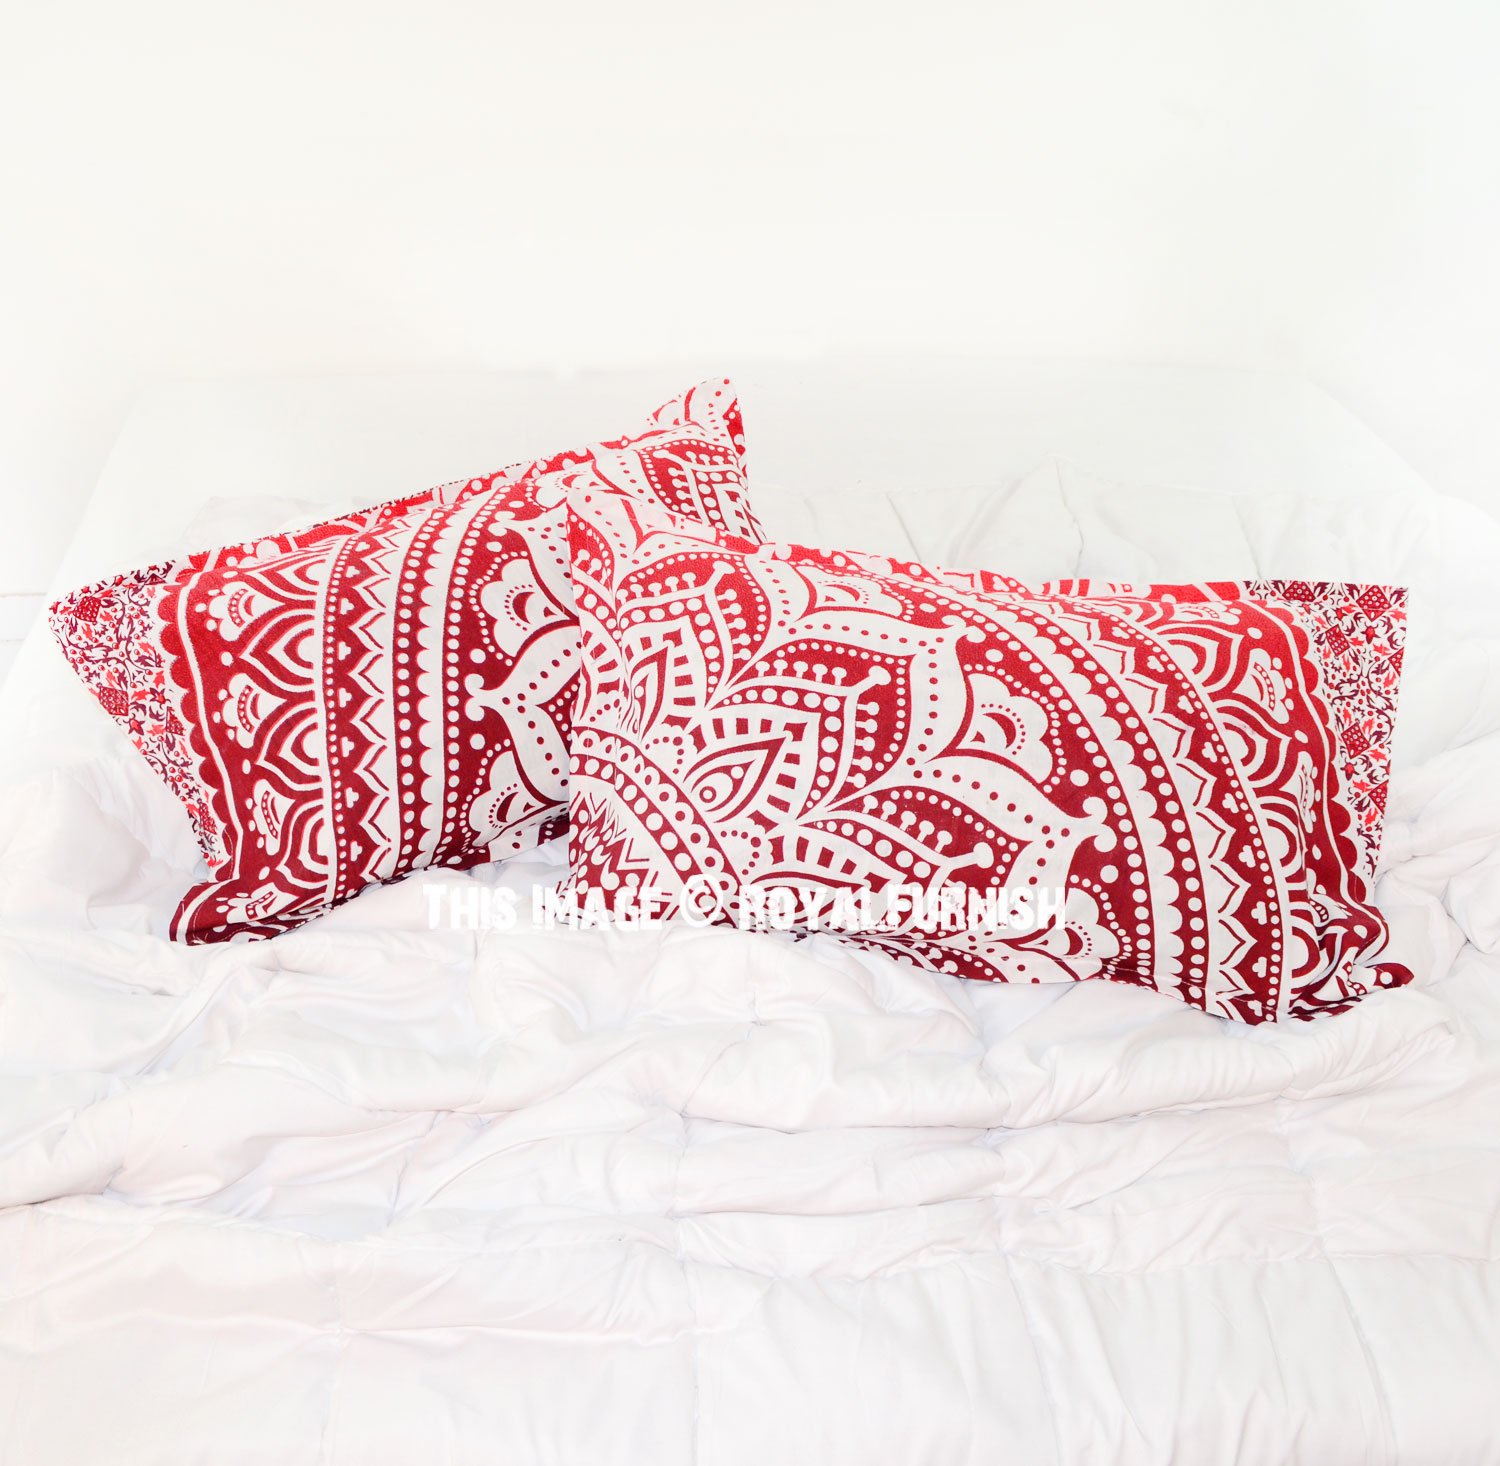 Red Throw Pillows For Bed : Decorative Red Bohemian Floral Ombre Mandala Bed Pillow Covers Set of Two - RoyalFurnish.com